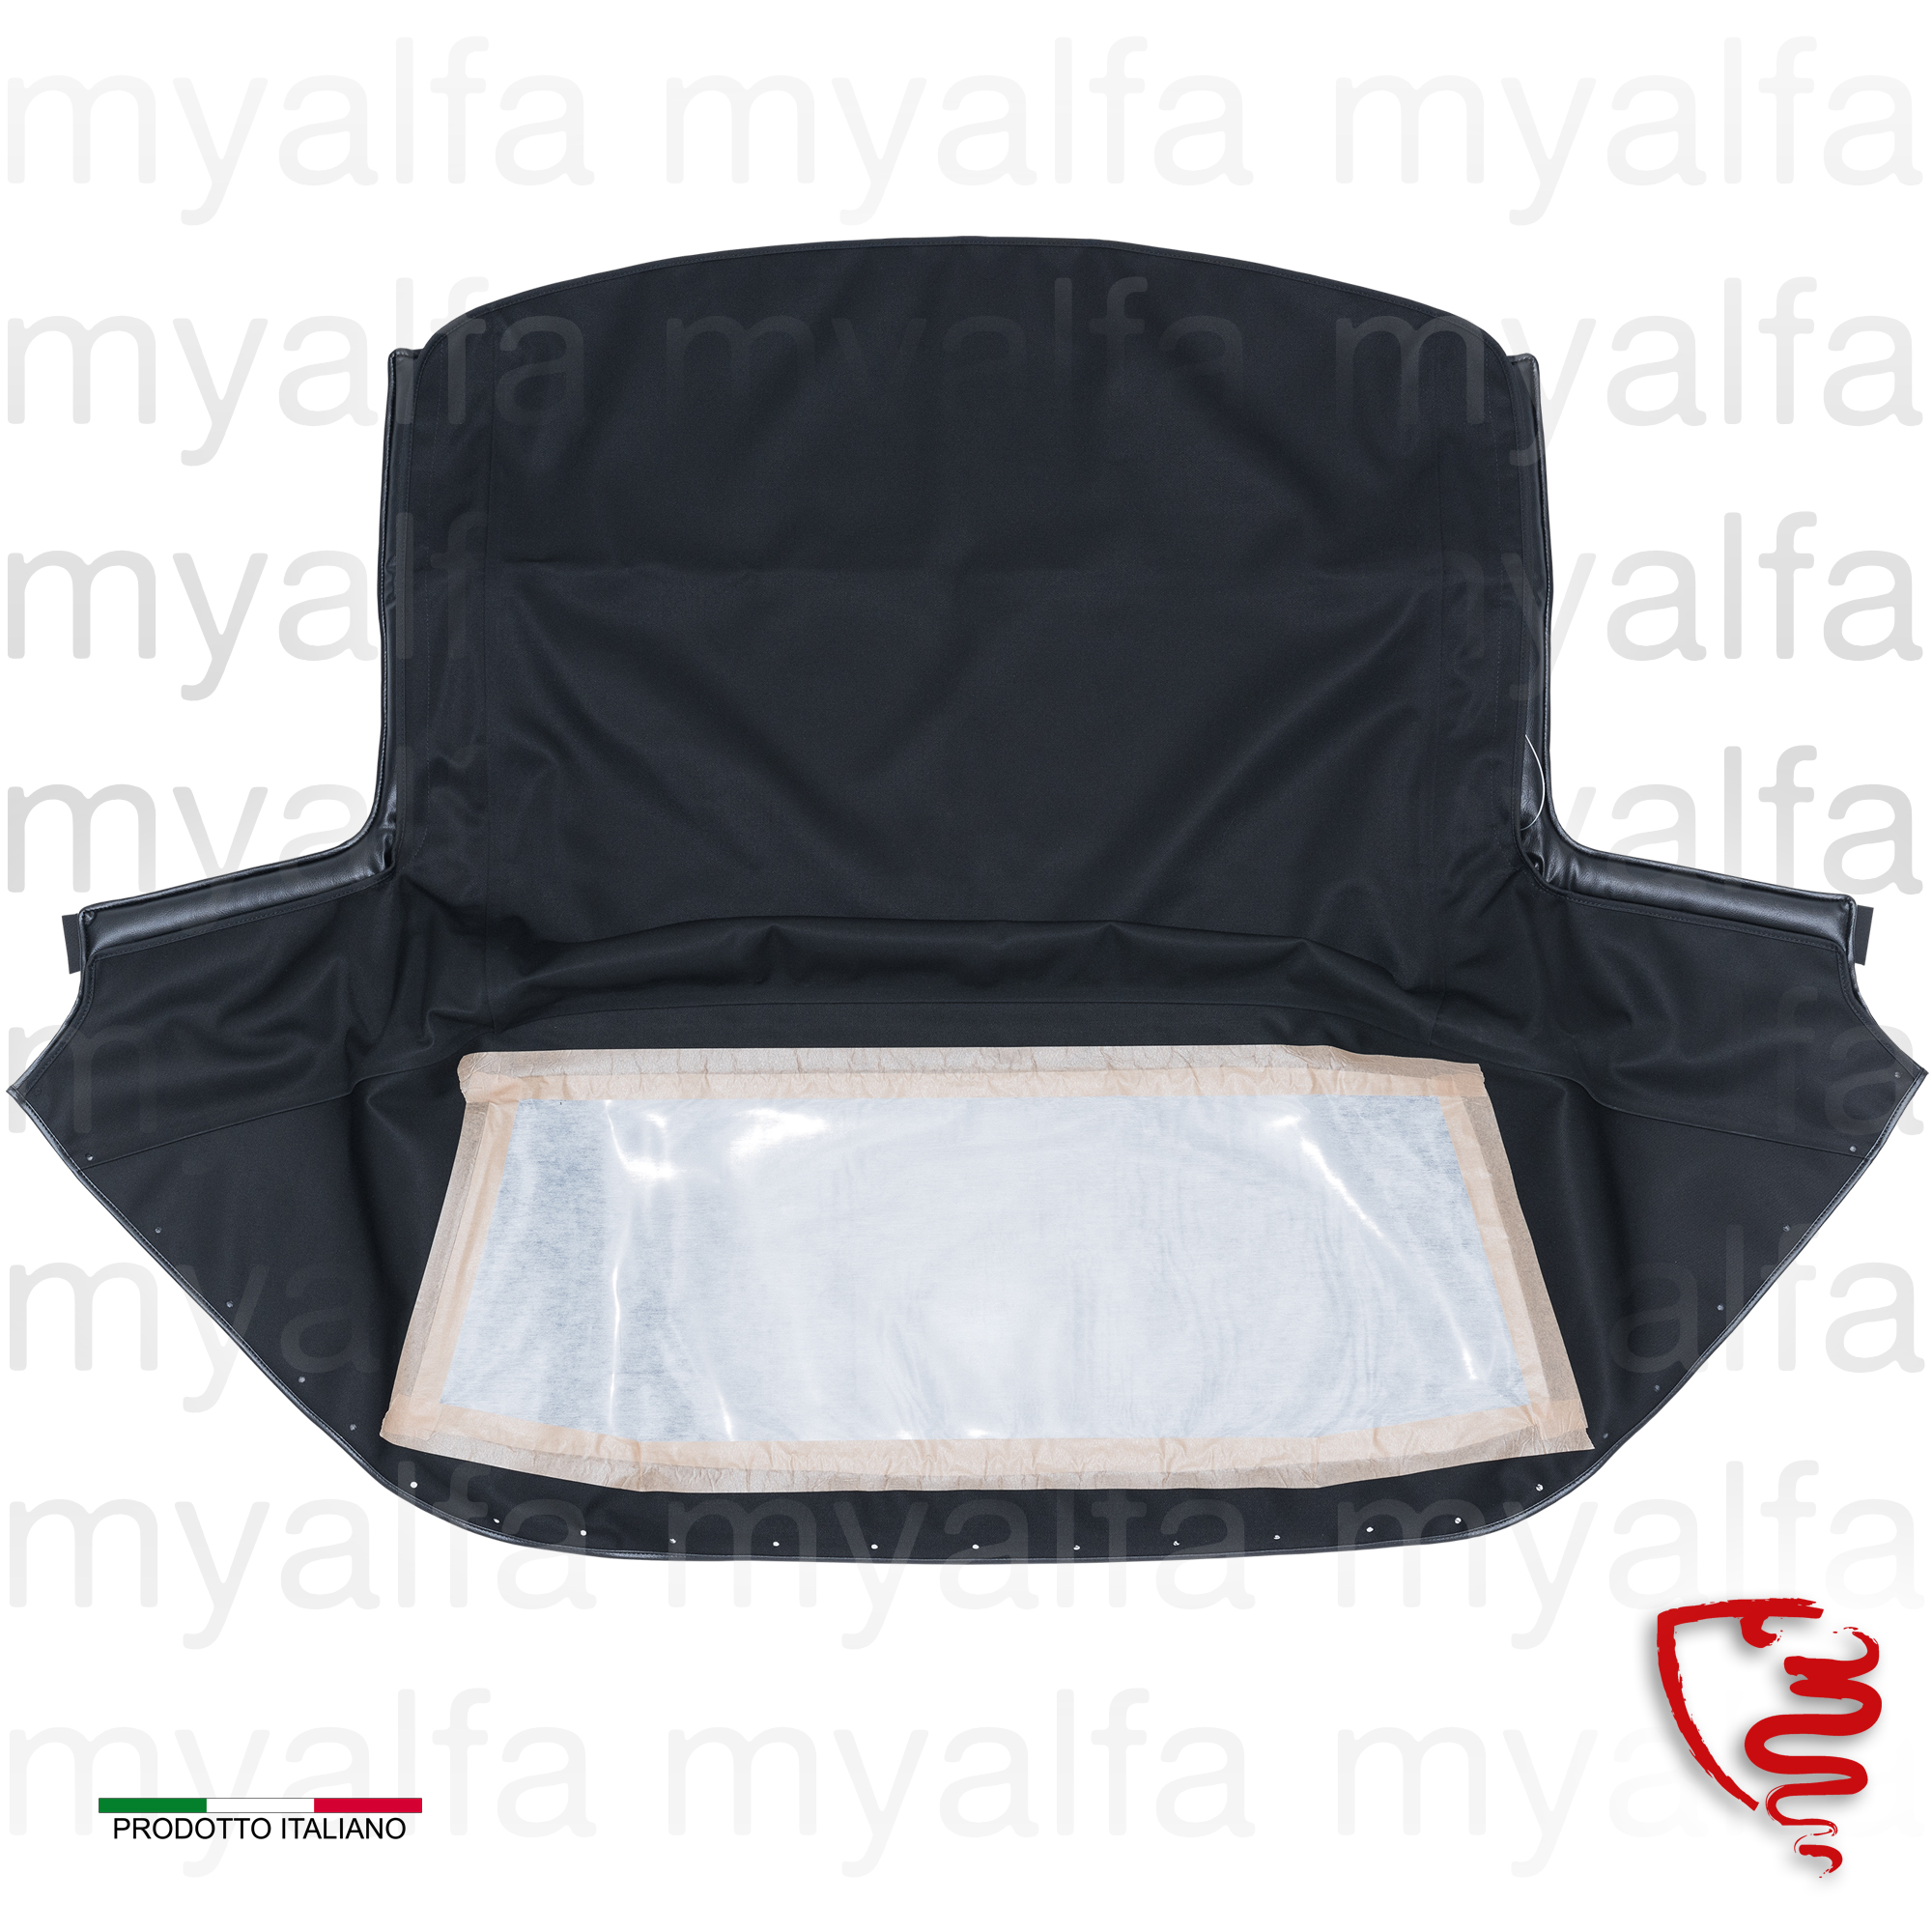 Bonnet black canvas on Sonneland Spider 1970-93 for 105/115, Spider, Body parts, Top Covers, Convertible top